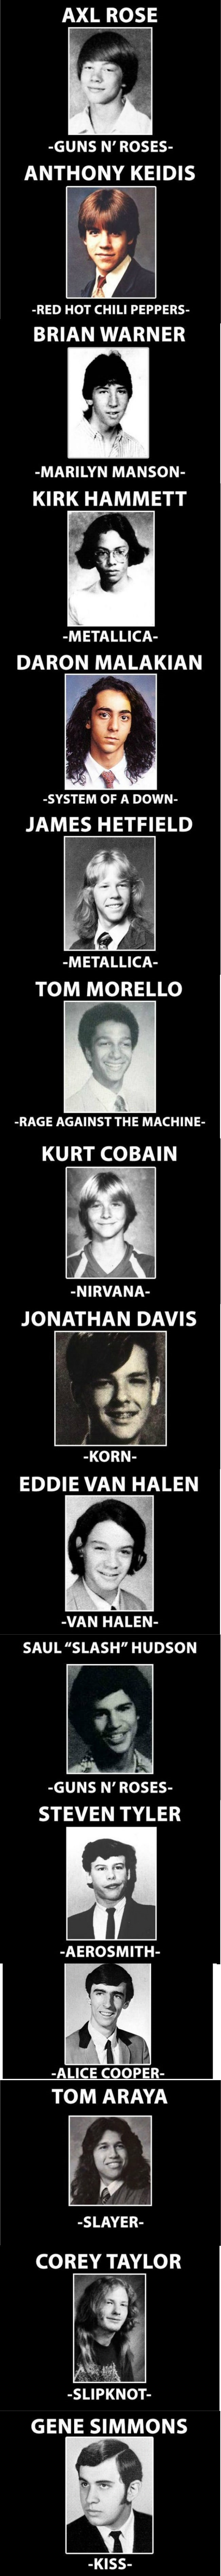 Famous rock stars in their high school days